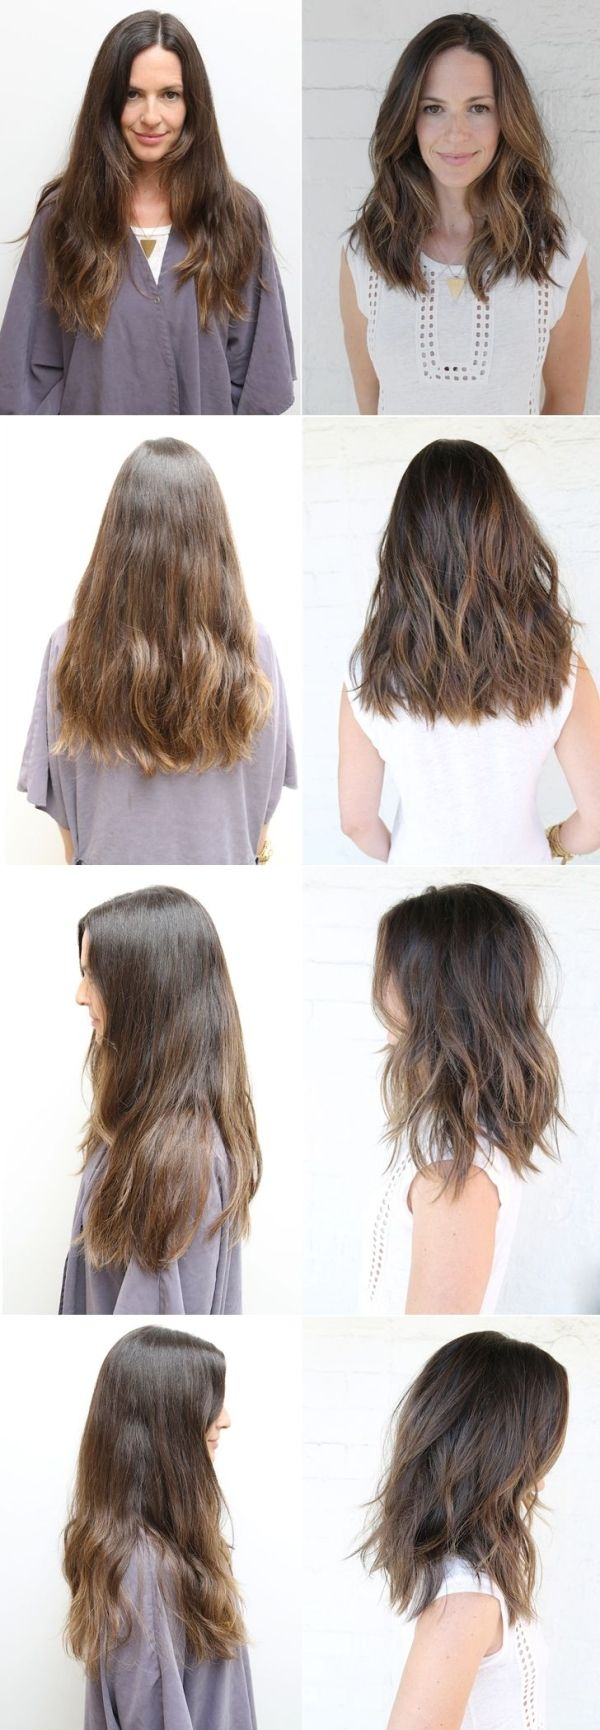 How to cut a lob haircut on yourself find your perfect hair style 61 best hair images on pinterest human color cut and you 8 you tutorials that make diy haircuts solutioingenieria Images